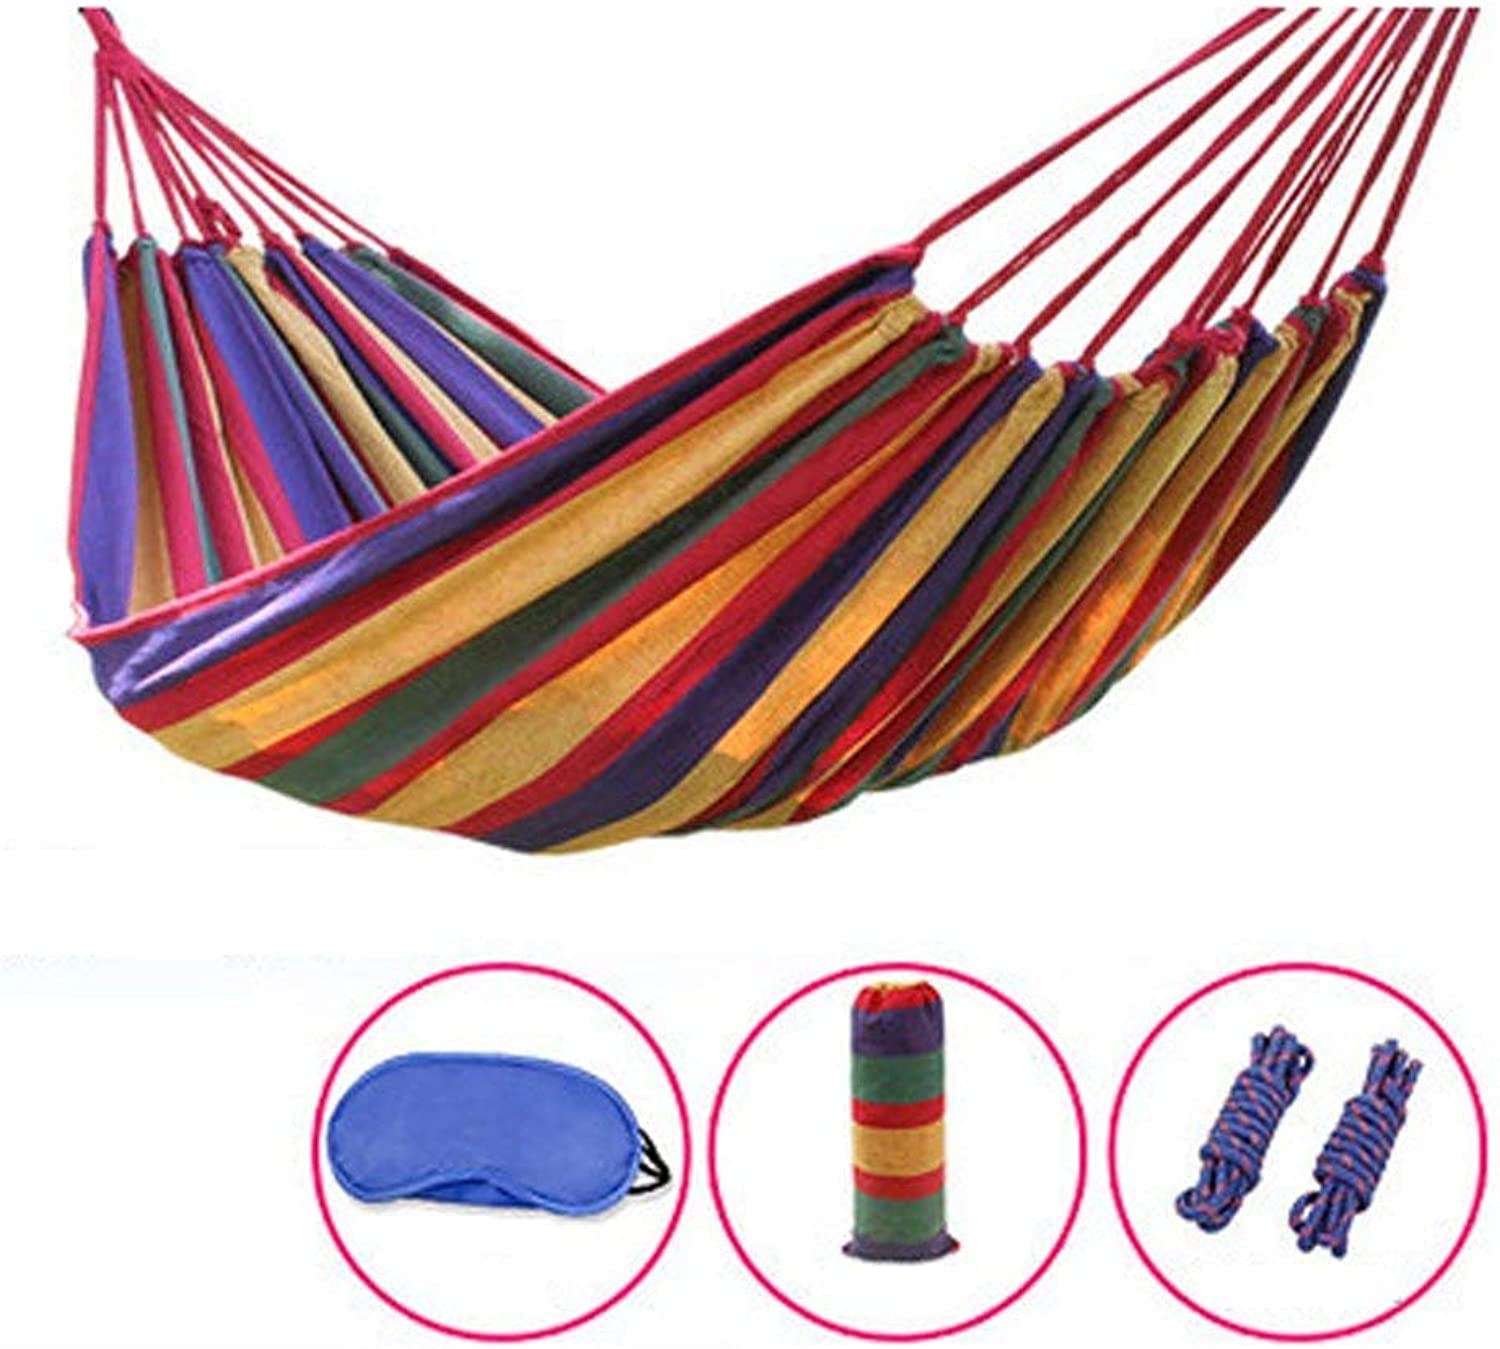 Hammocks Outdoor Thicker Canvas Camping Dorm Room Indoor Bedroom Student Swing Climbing Tourism Equipment (color   Red, Size   180  150cm)